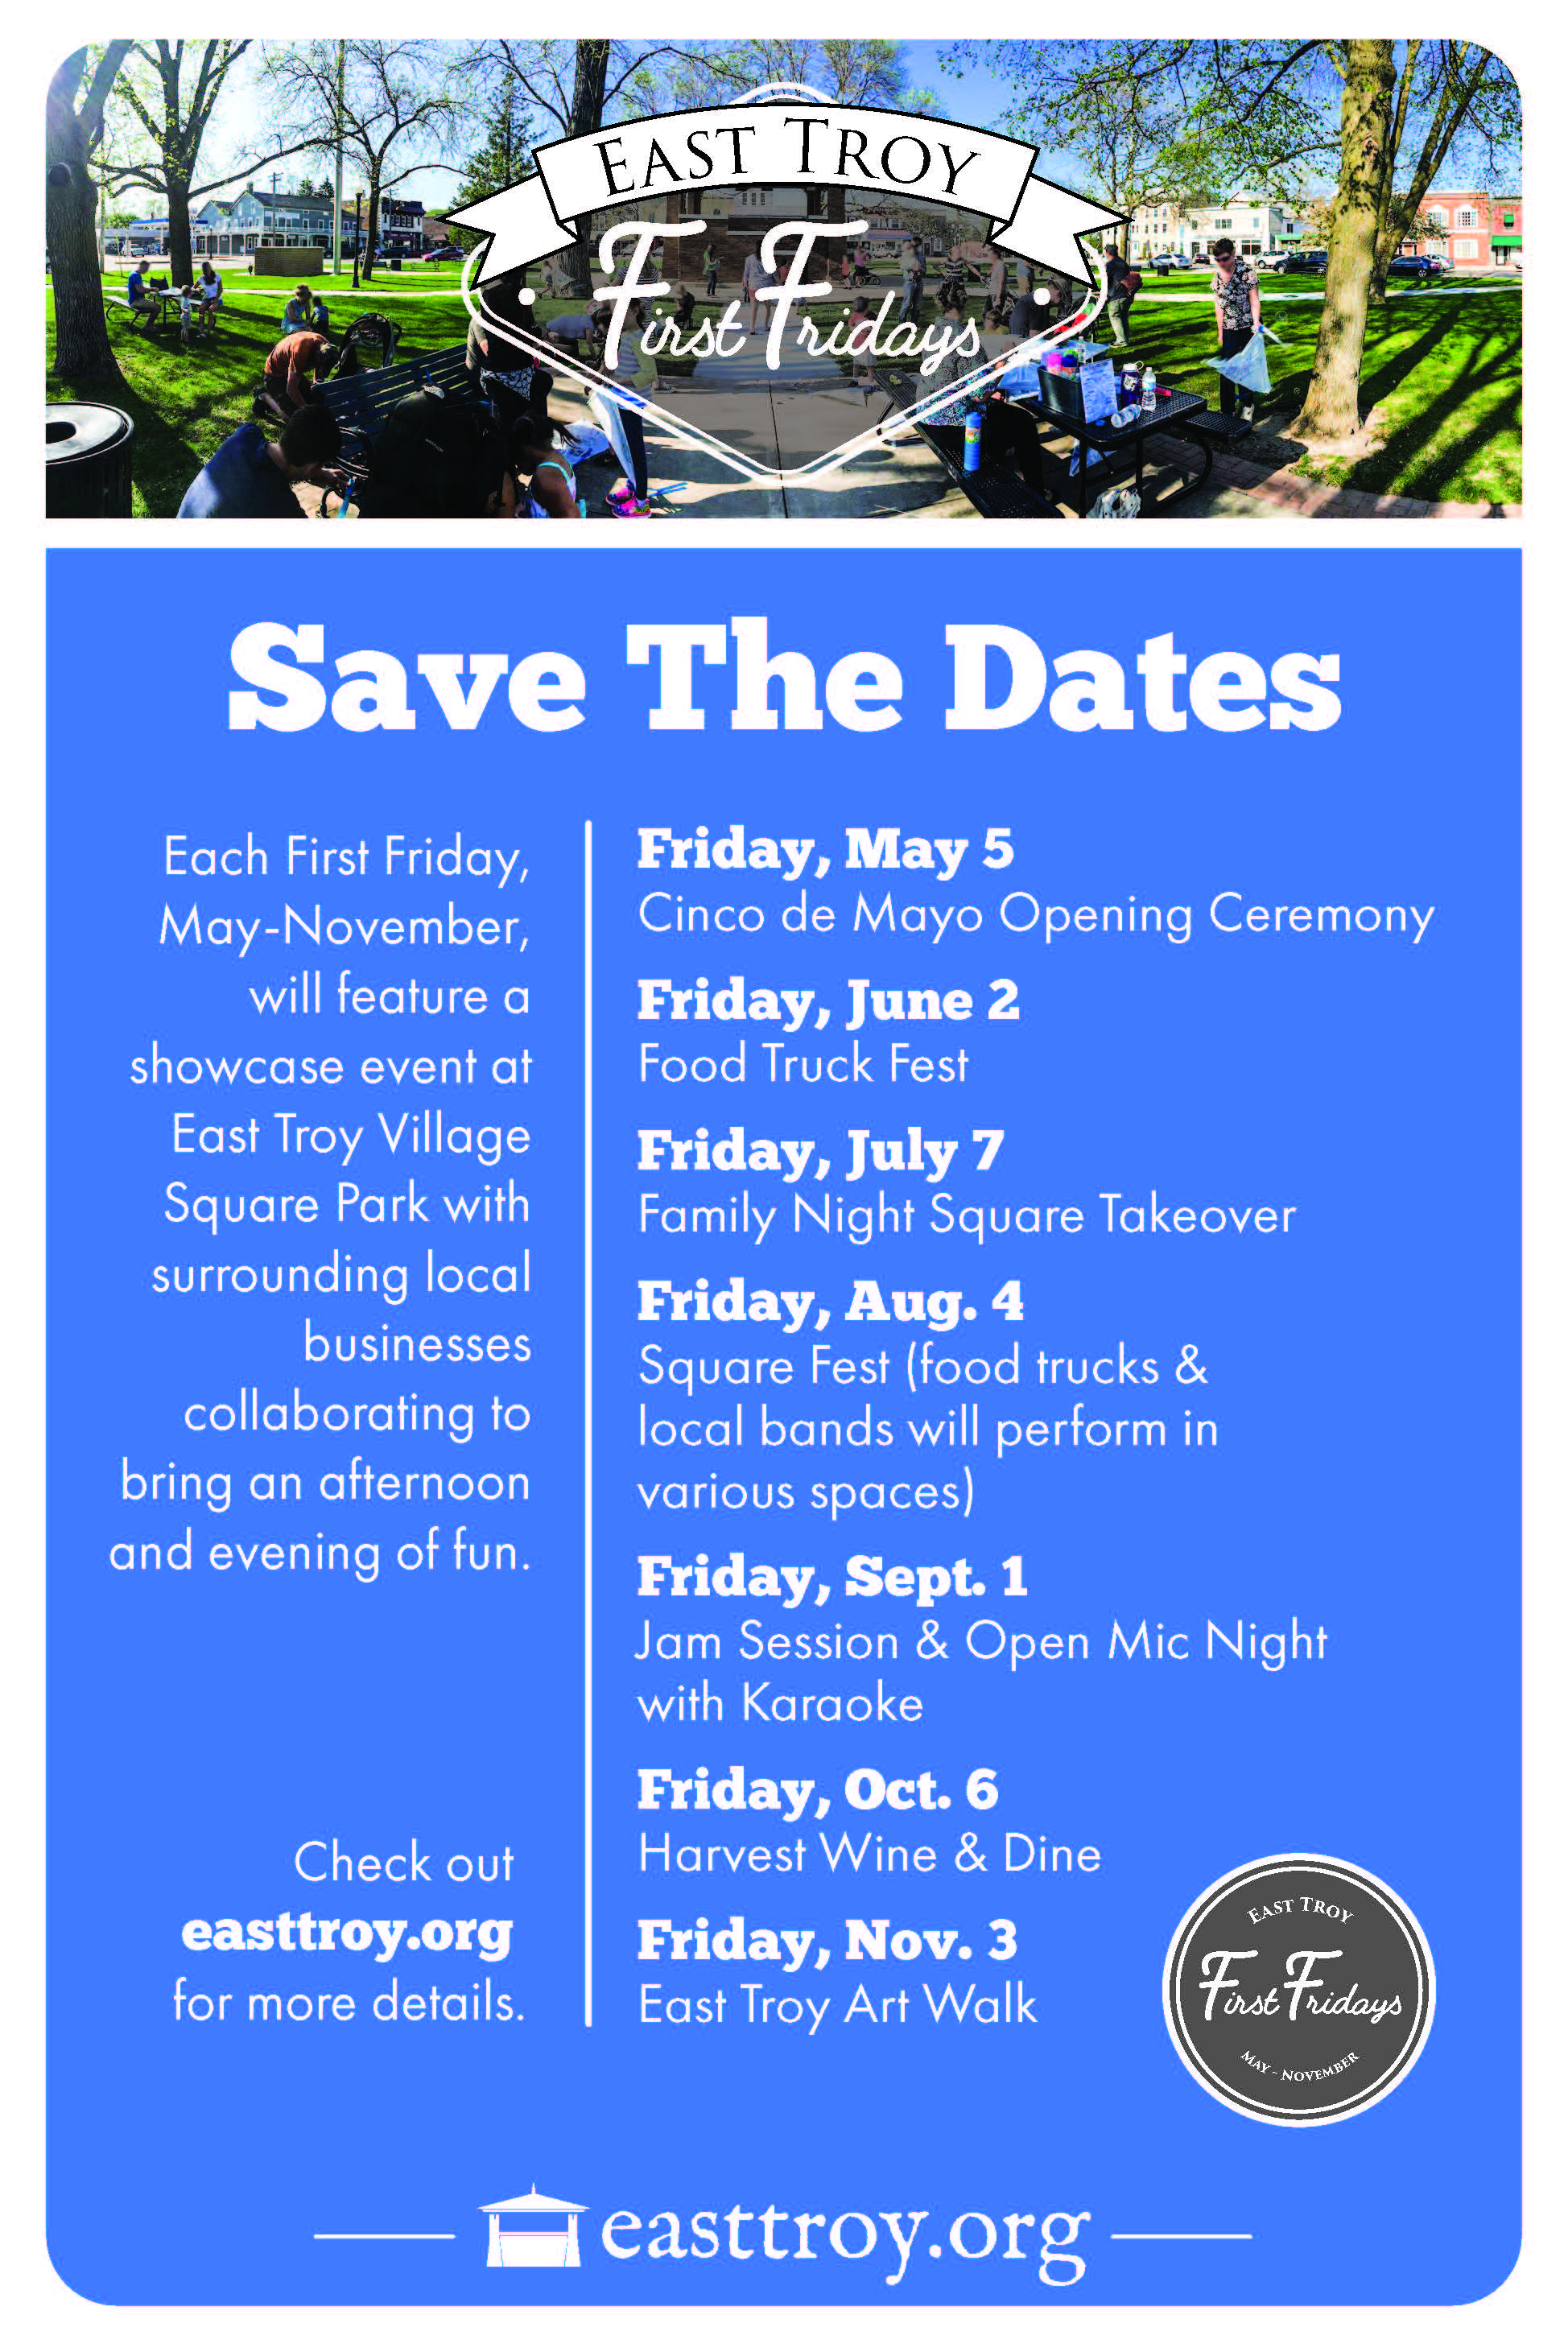 East Troy Area Chamber of Commerce & Tourism - East Troy